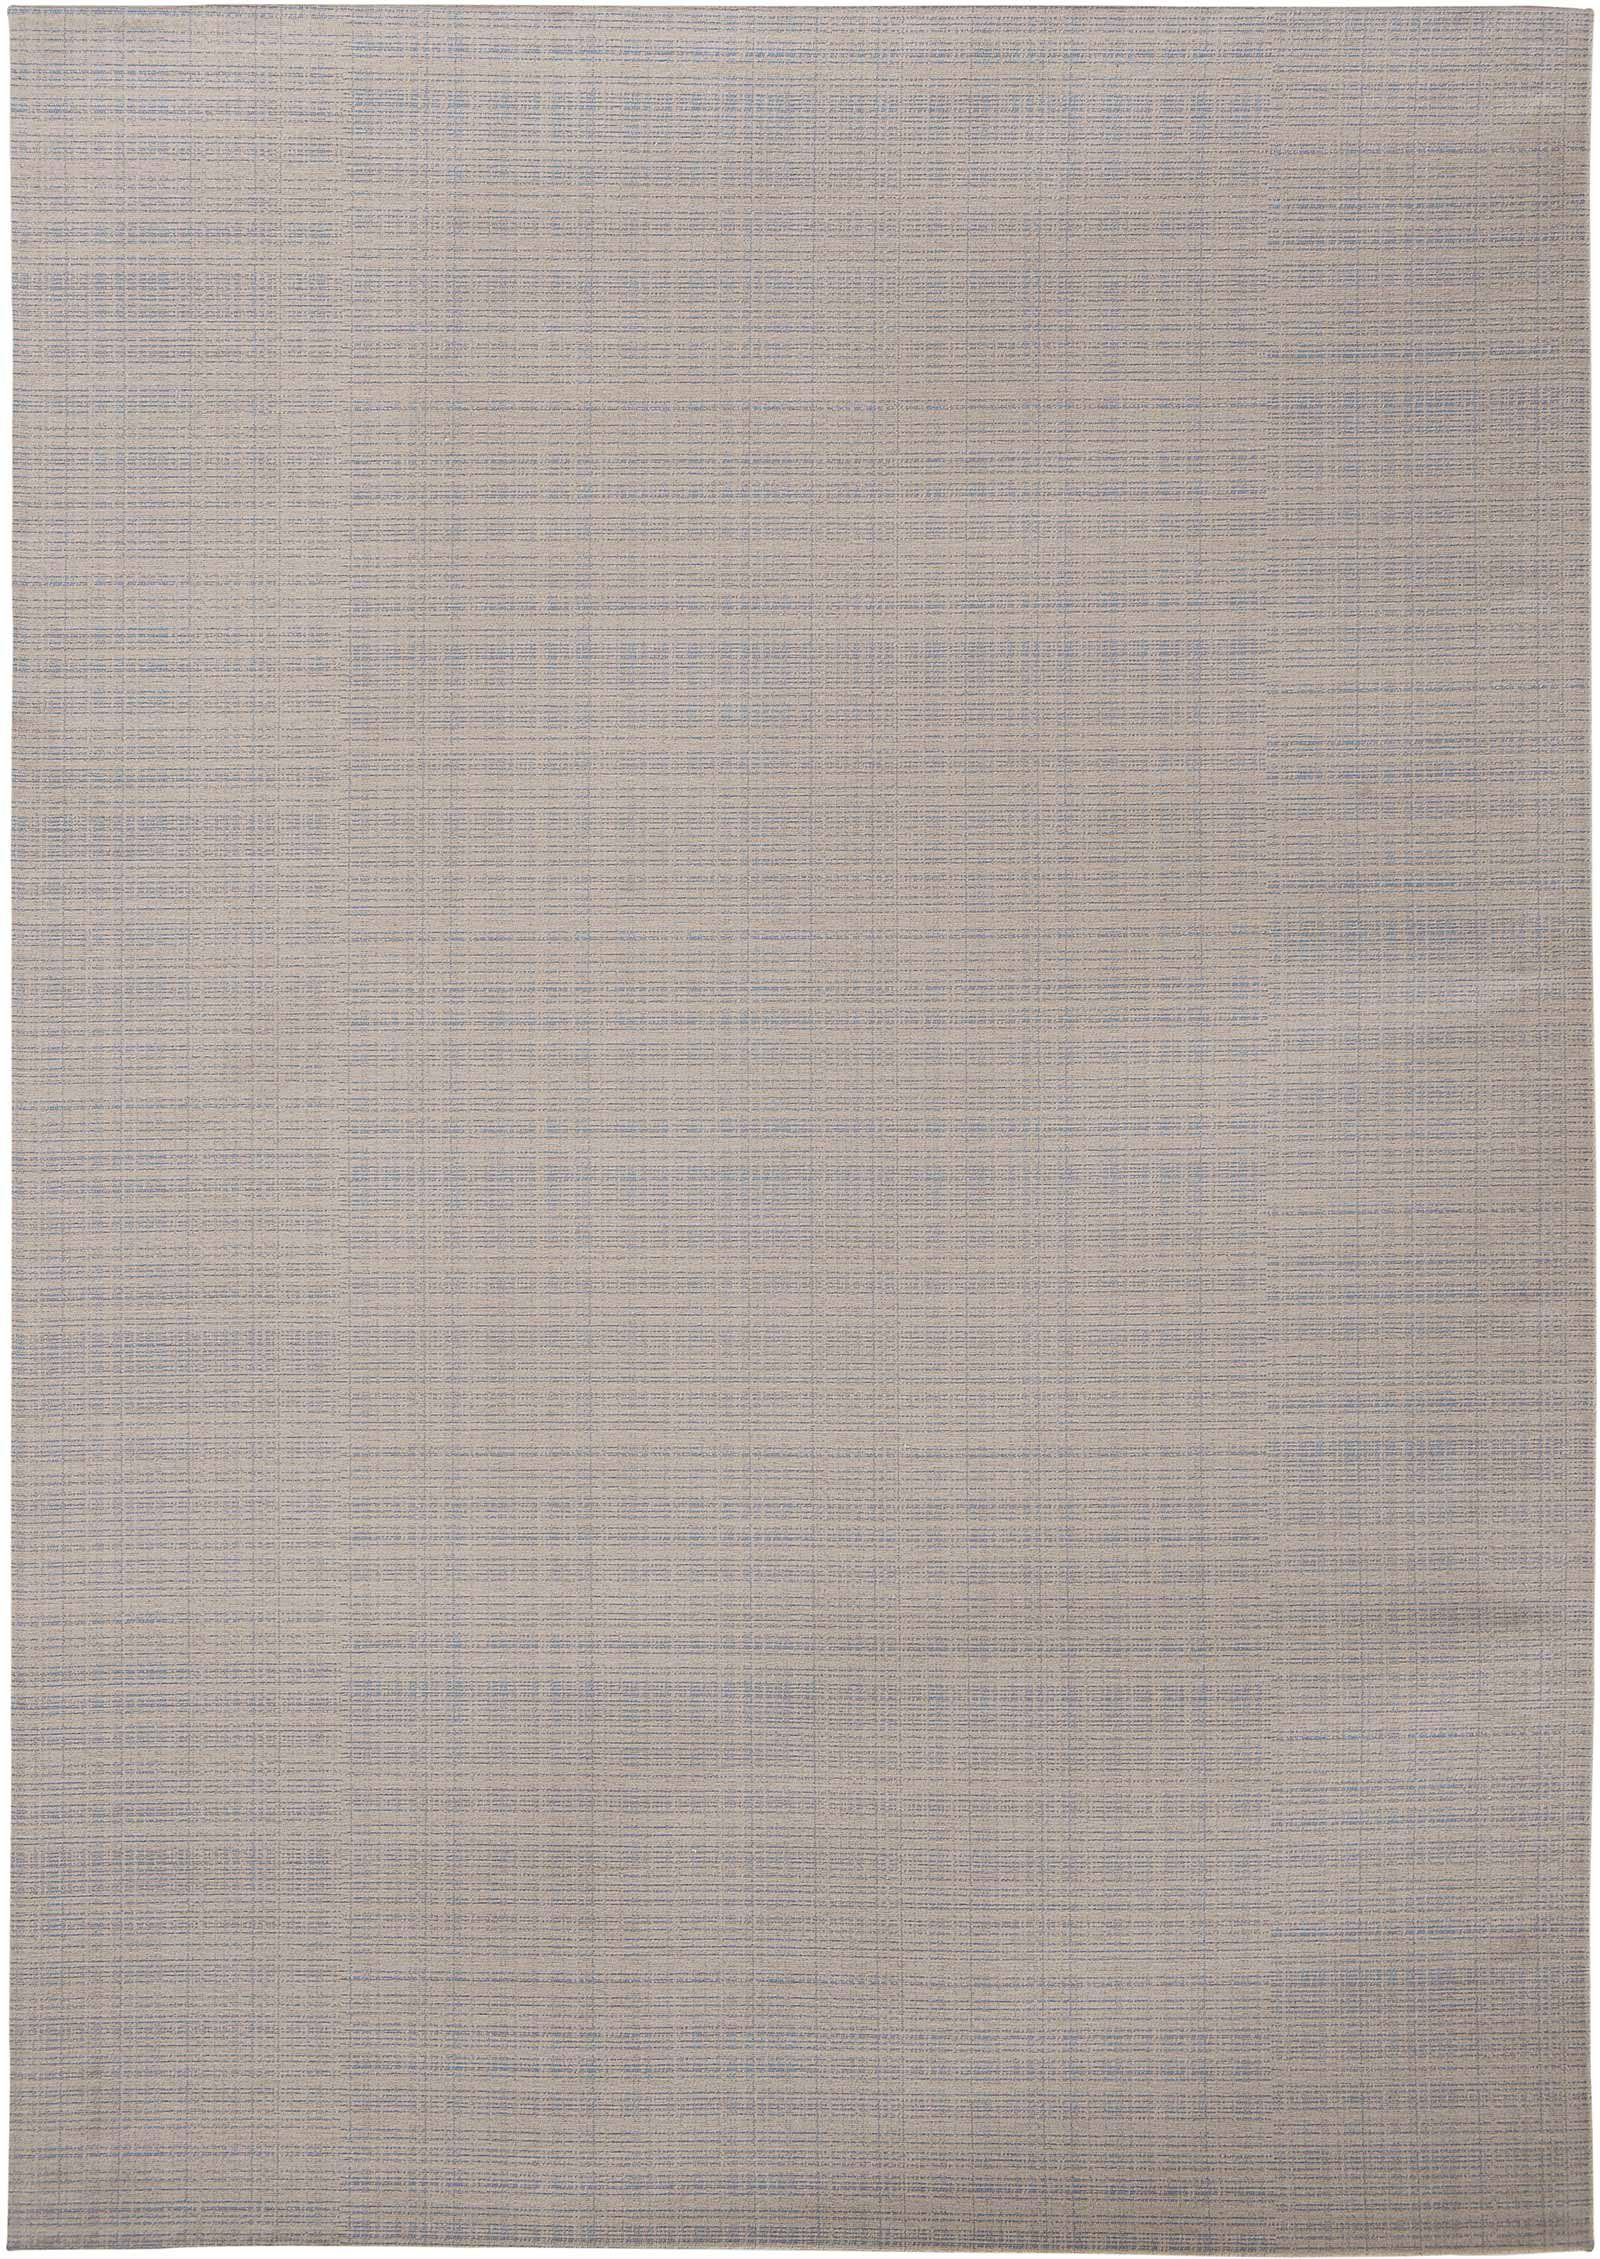 Louis De Poortere Jackies Wilton Rugs So Chic 8491